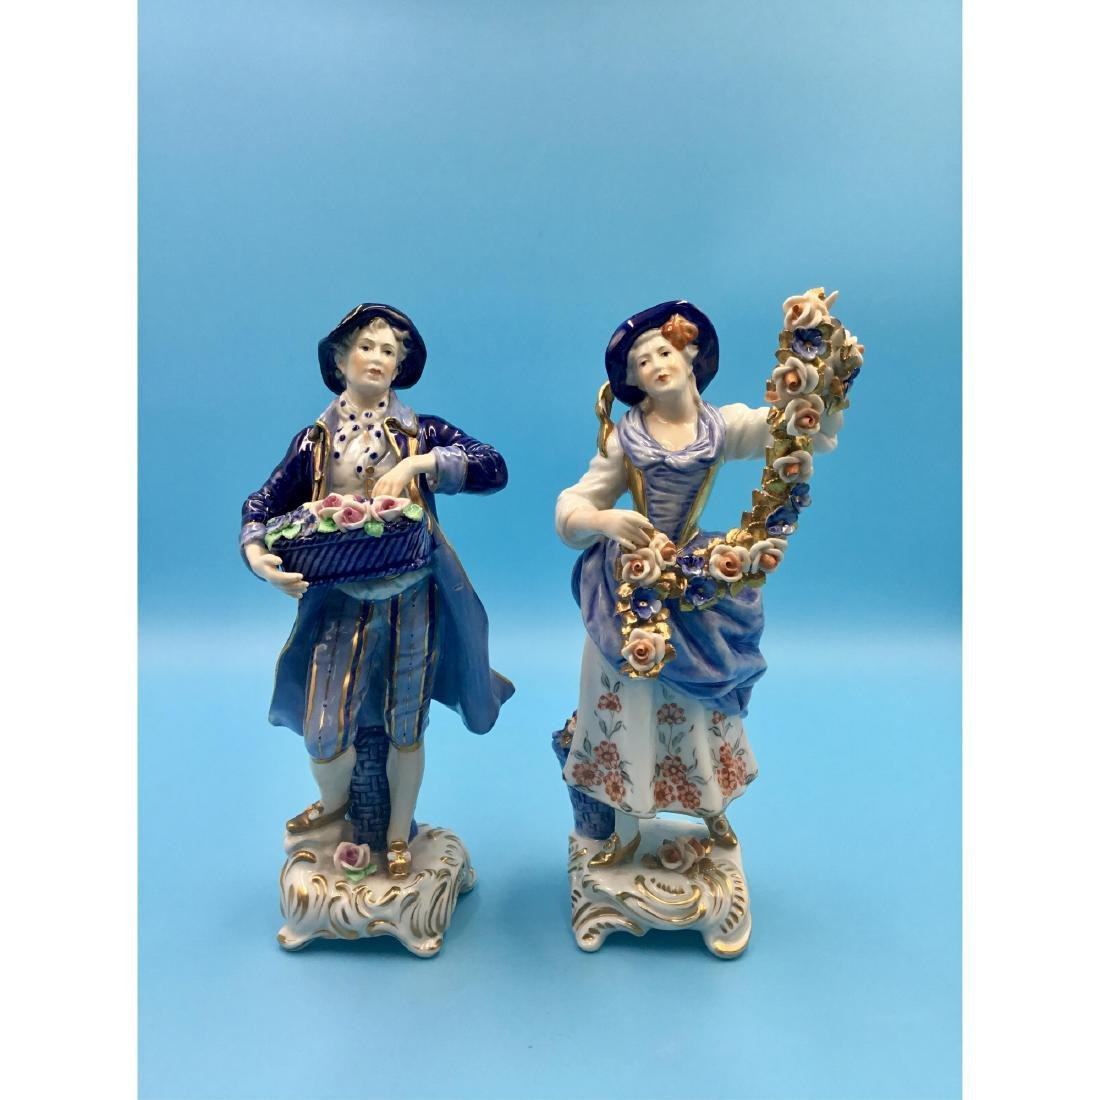 PAIR OF GERMAN PORCELAIN COUPLE FIGURINES